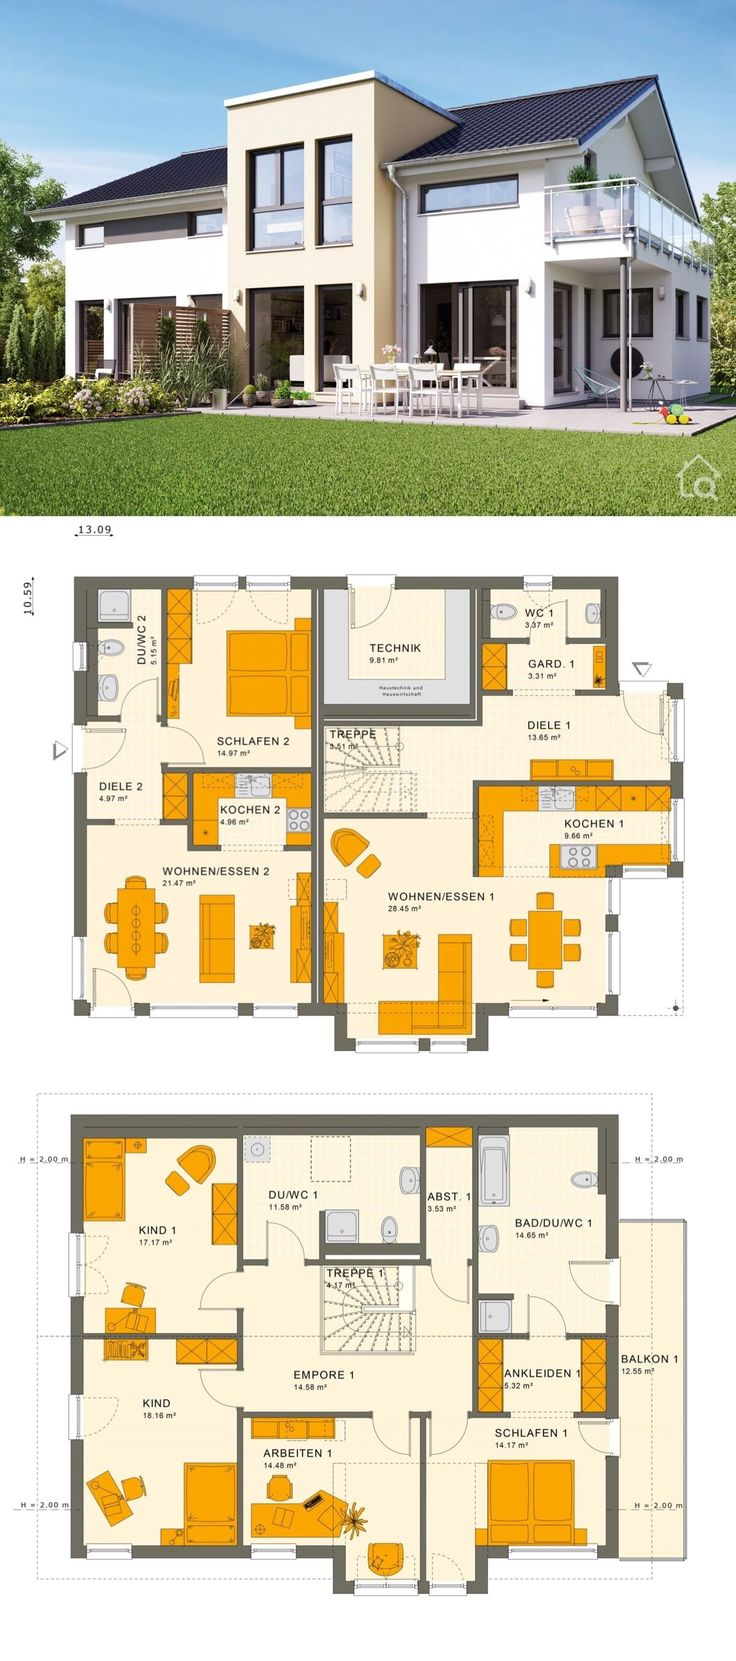 Two Family House with Granny Flat Modern Contempo…